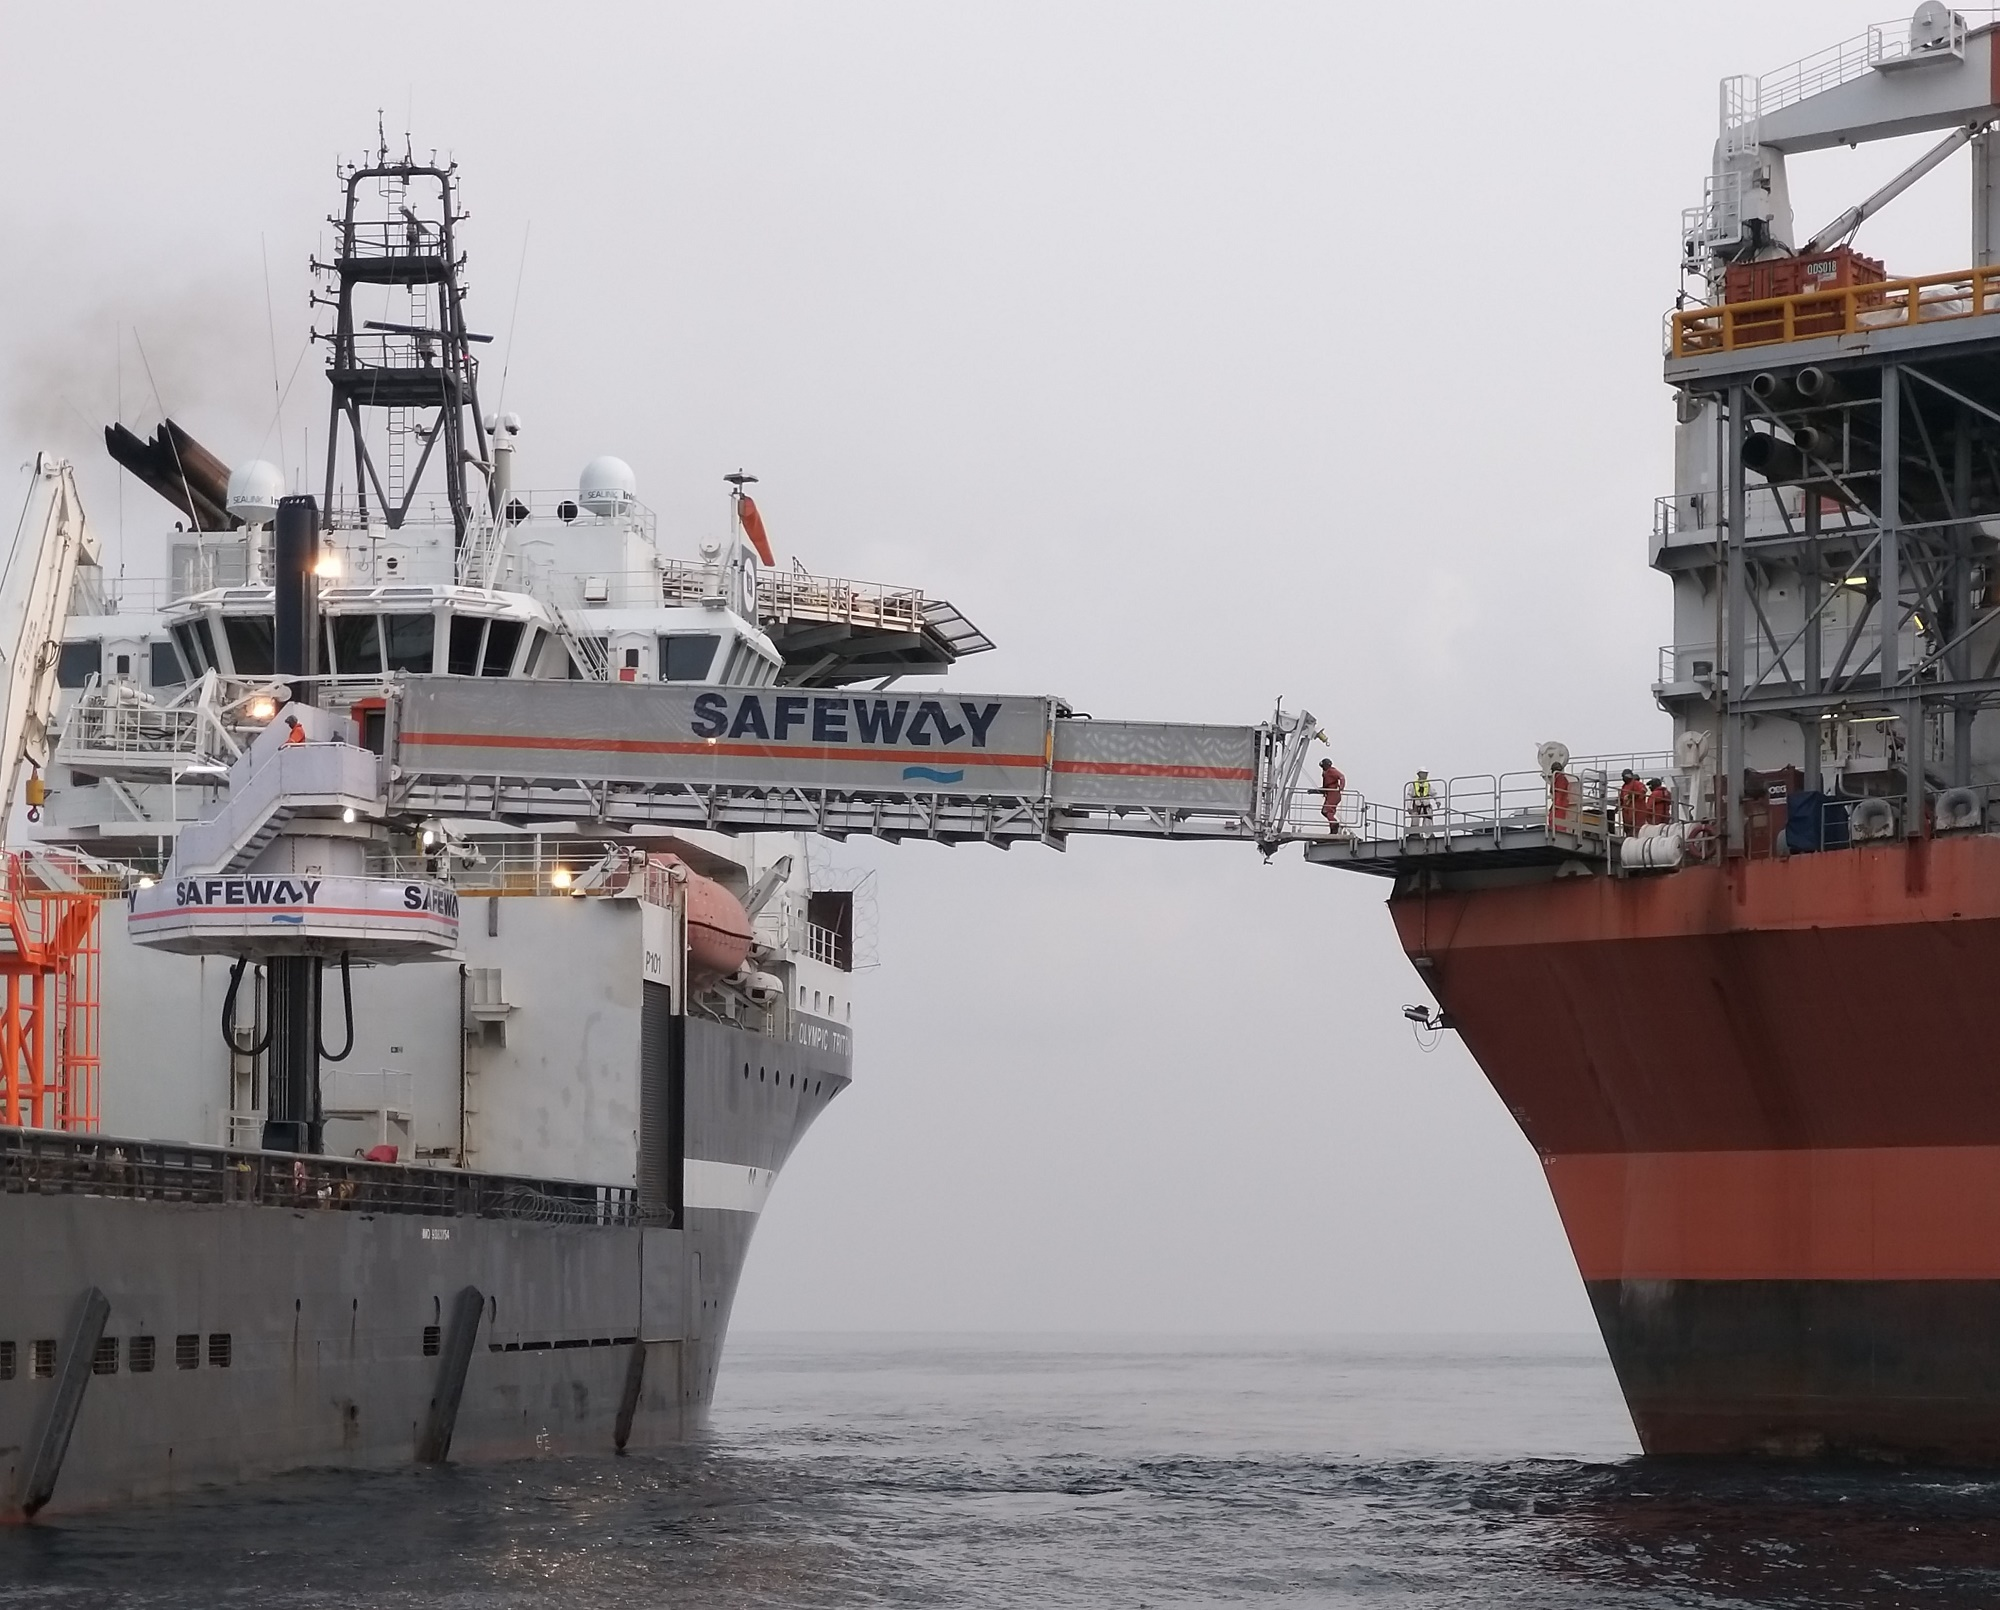 Safeway passes 10,000 safe personnel transfers at Shell Bonga FPSO with zero HSSE incidents